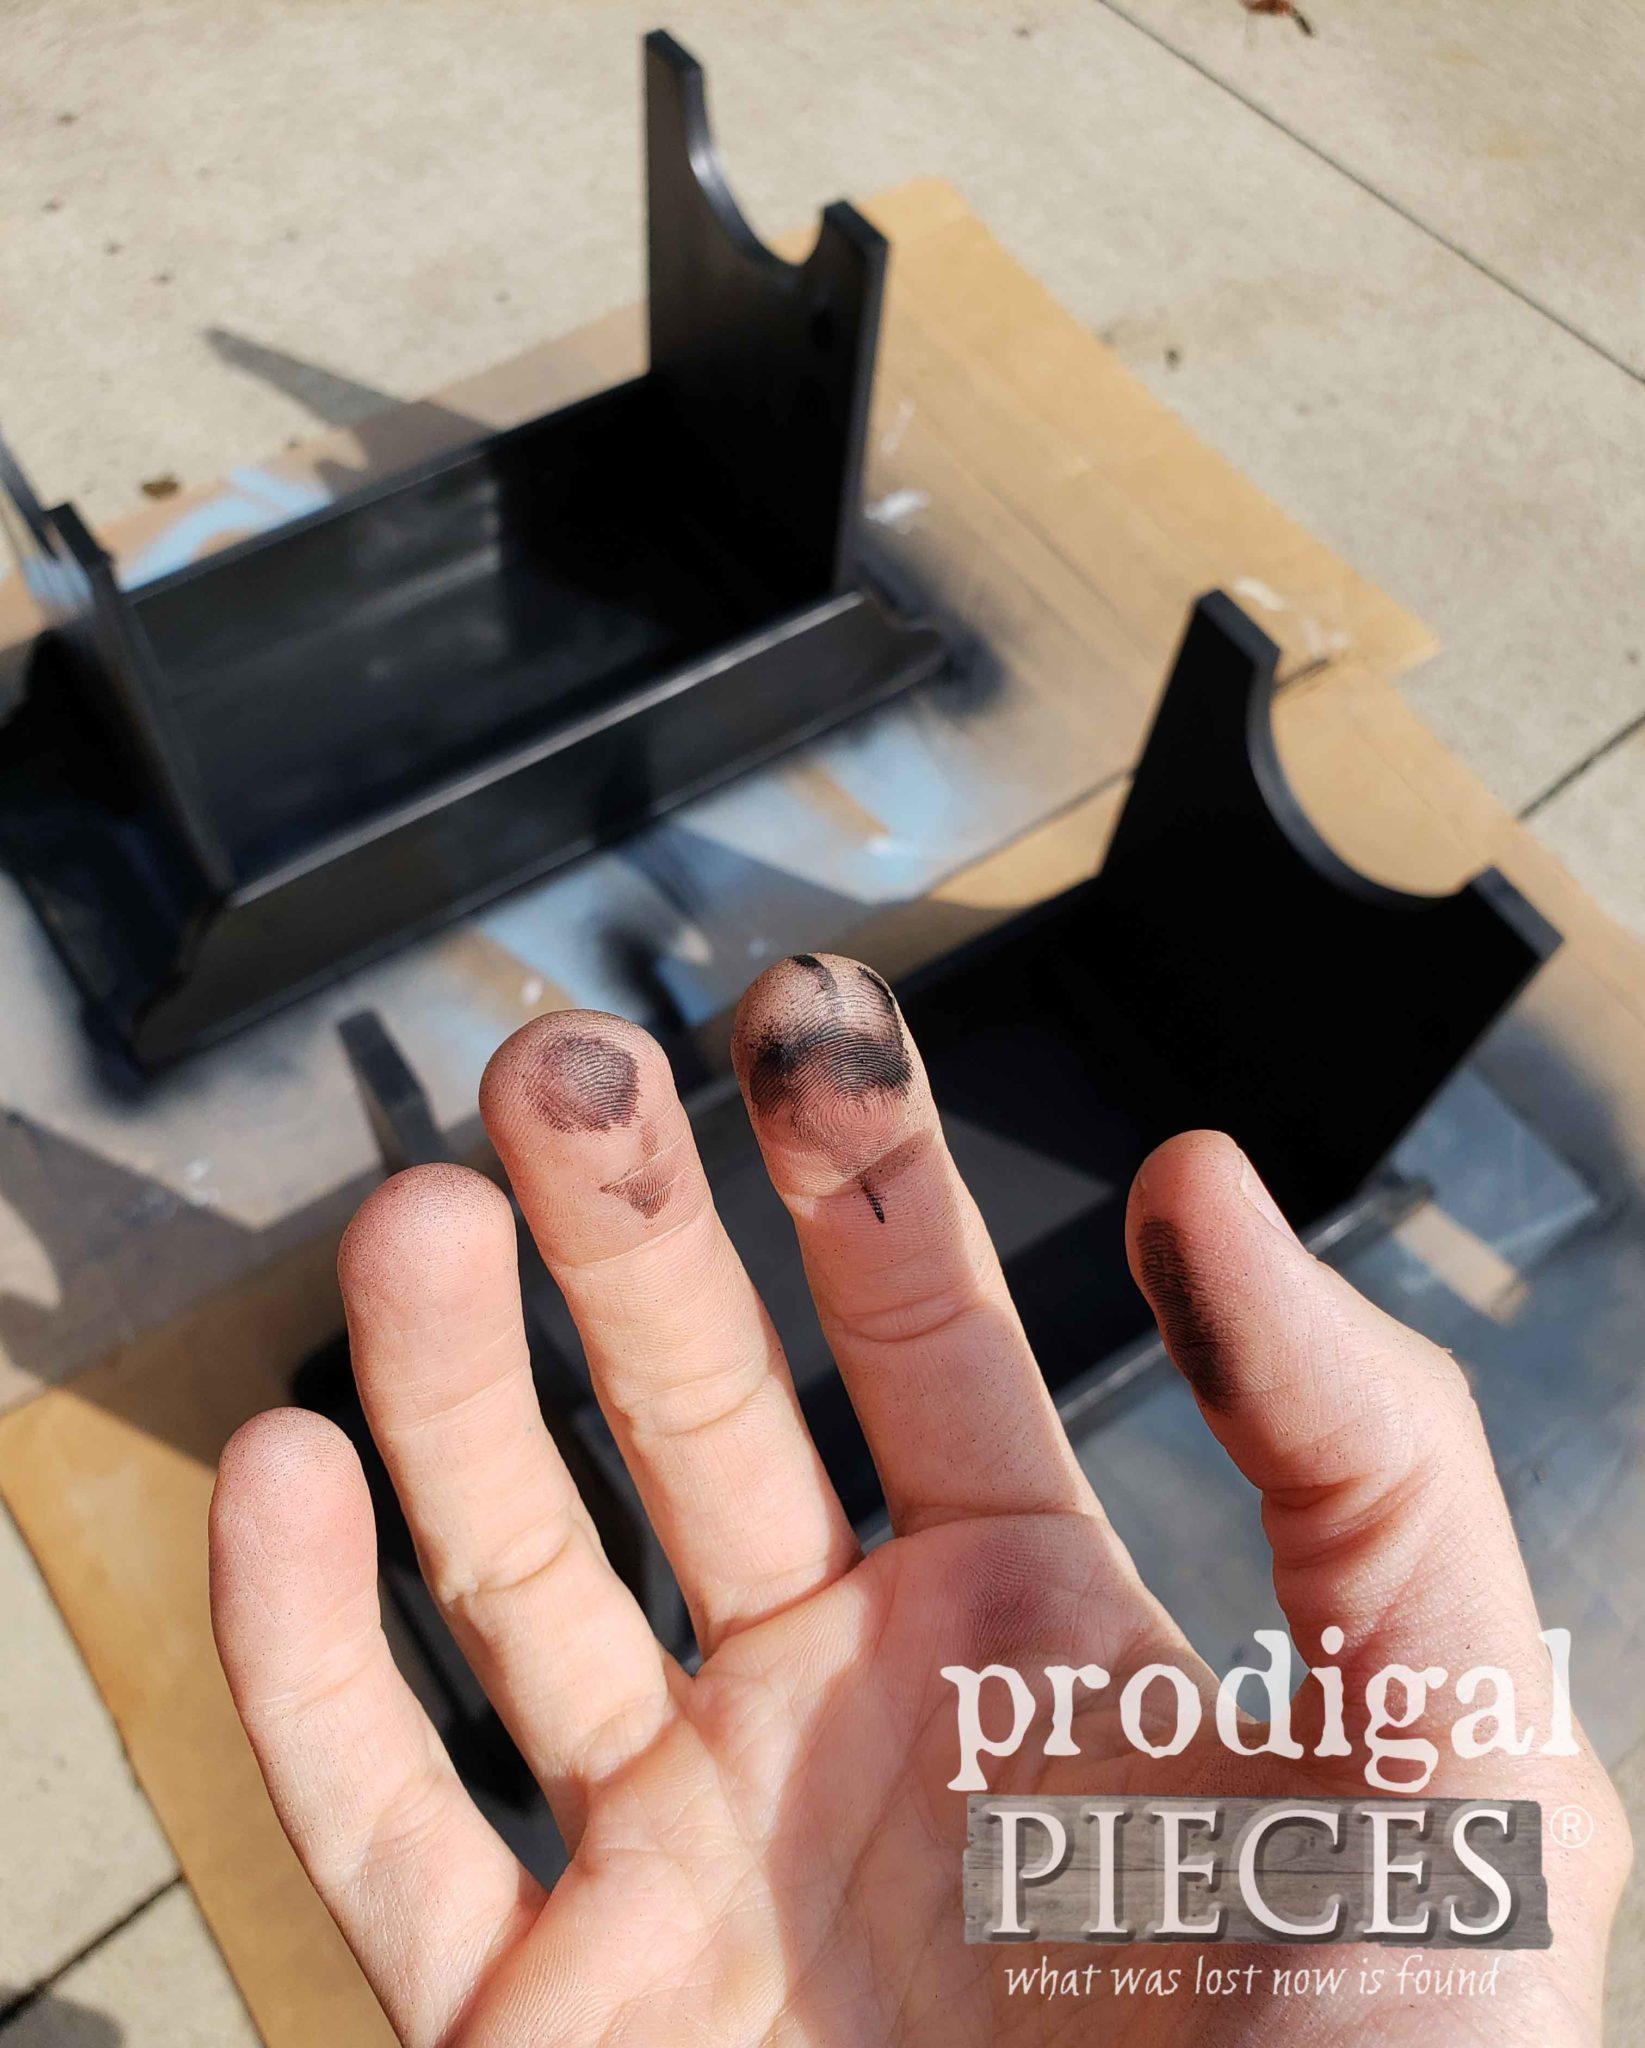 Spray Painted Fingers Clean up with a Natural Oil - No Chemical Cleaners Needed | prodigalpieces.com